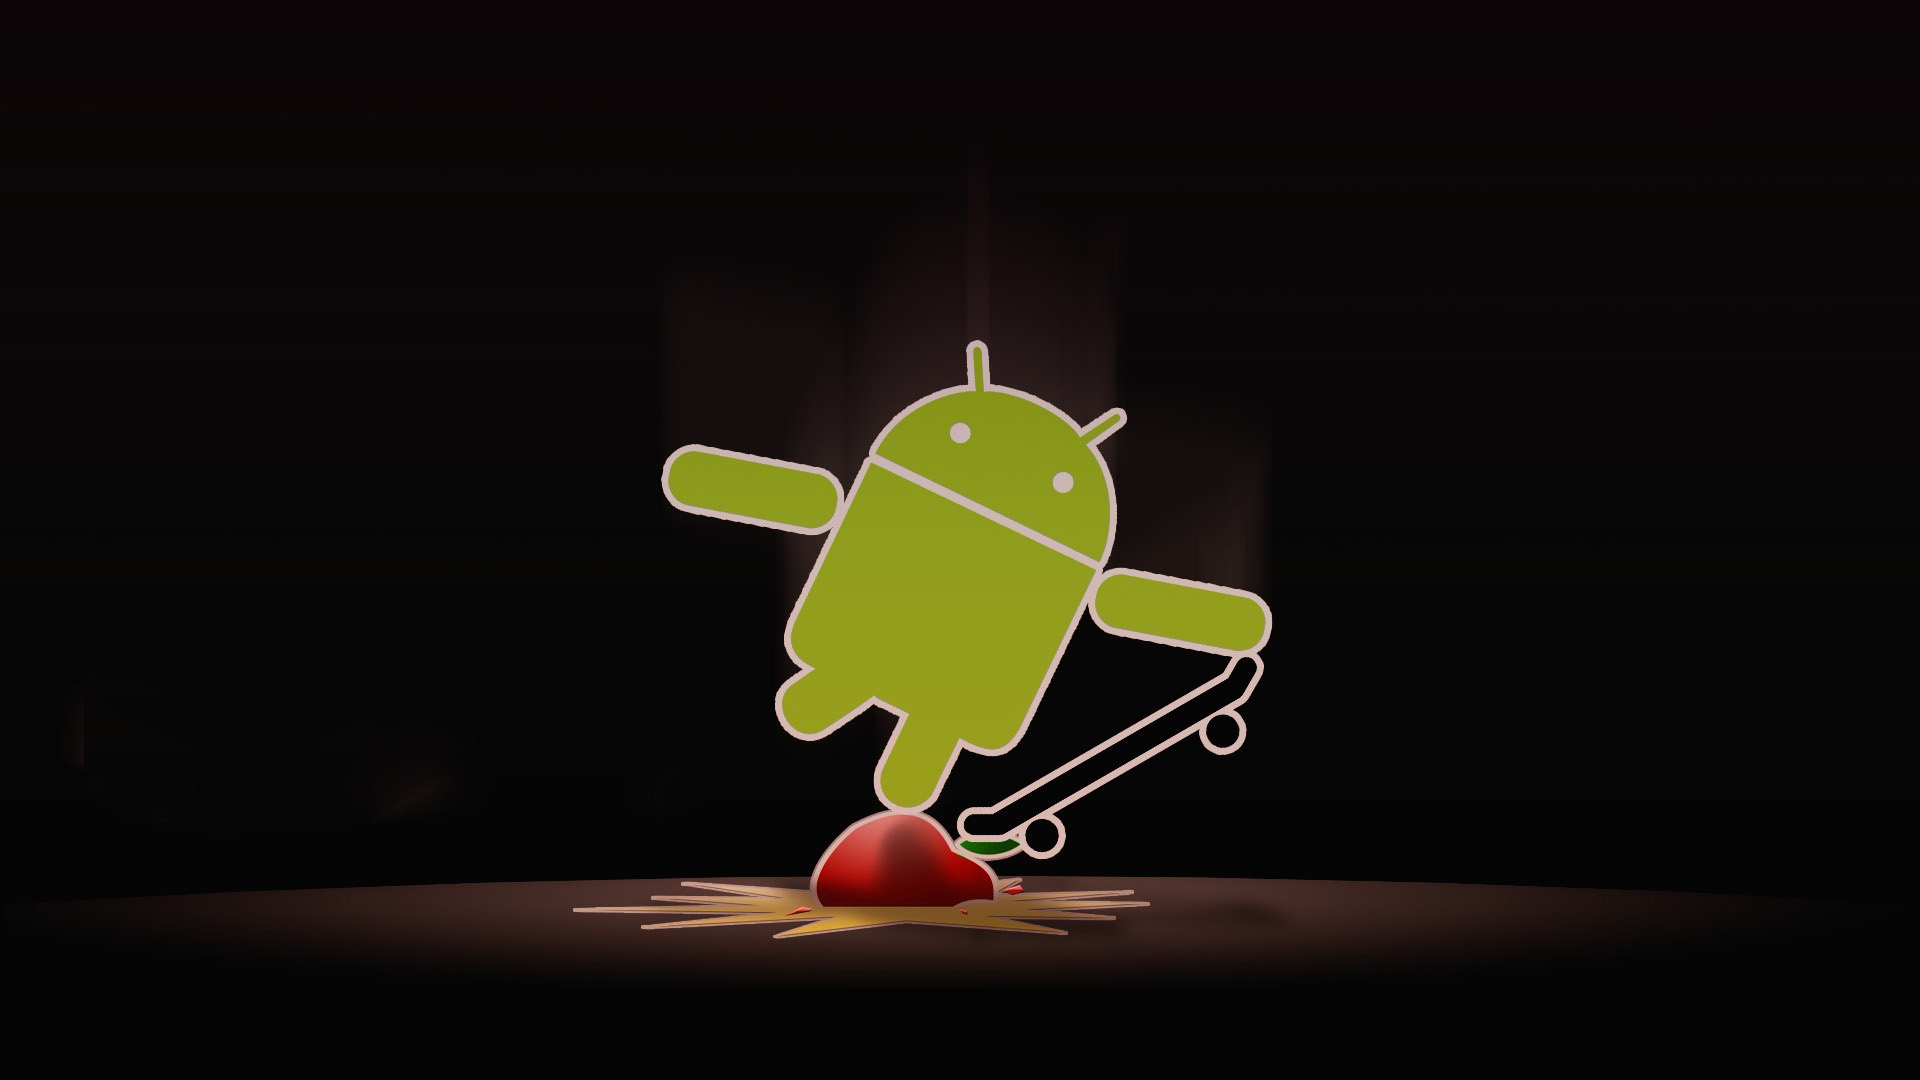 Android Wallpapers 13 - 1920 x 1080